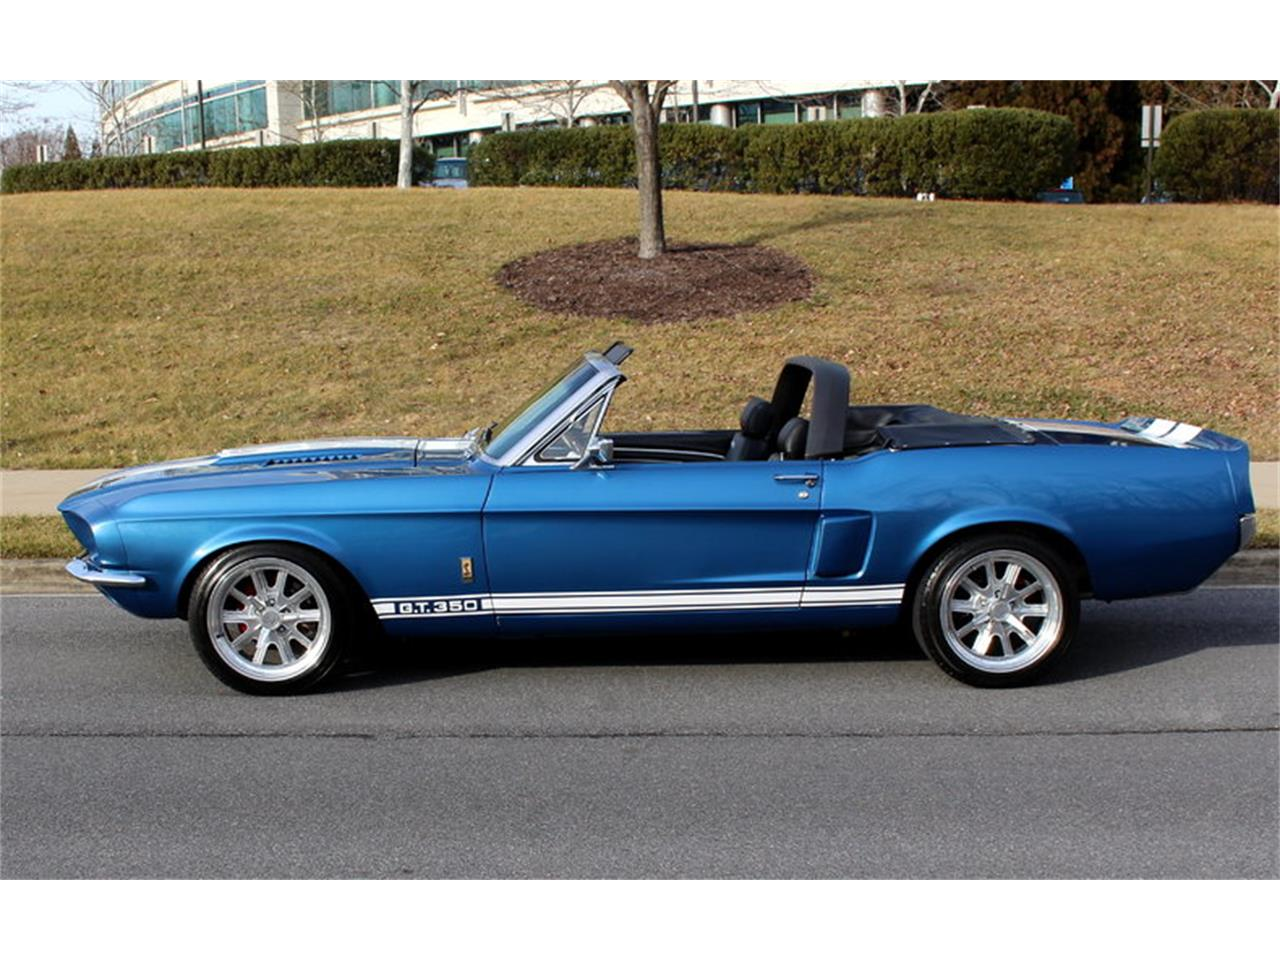 Mustang 1967 Convertible For Sale